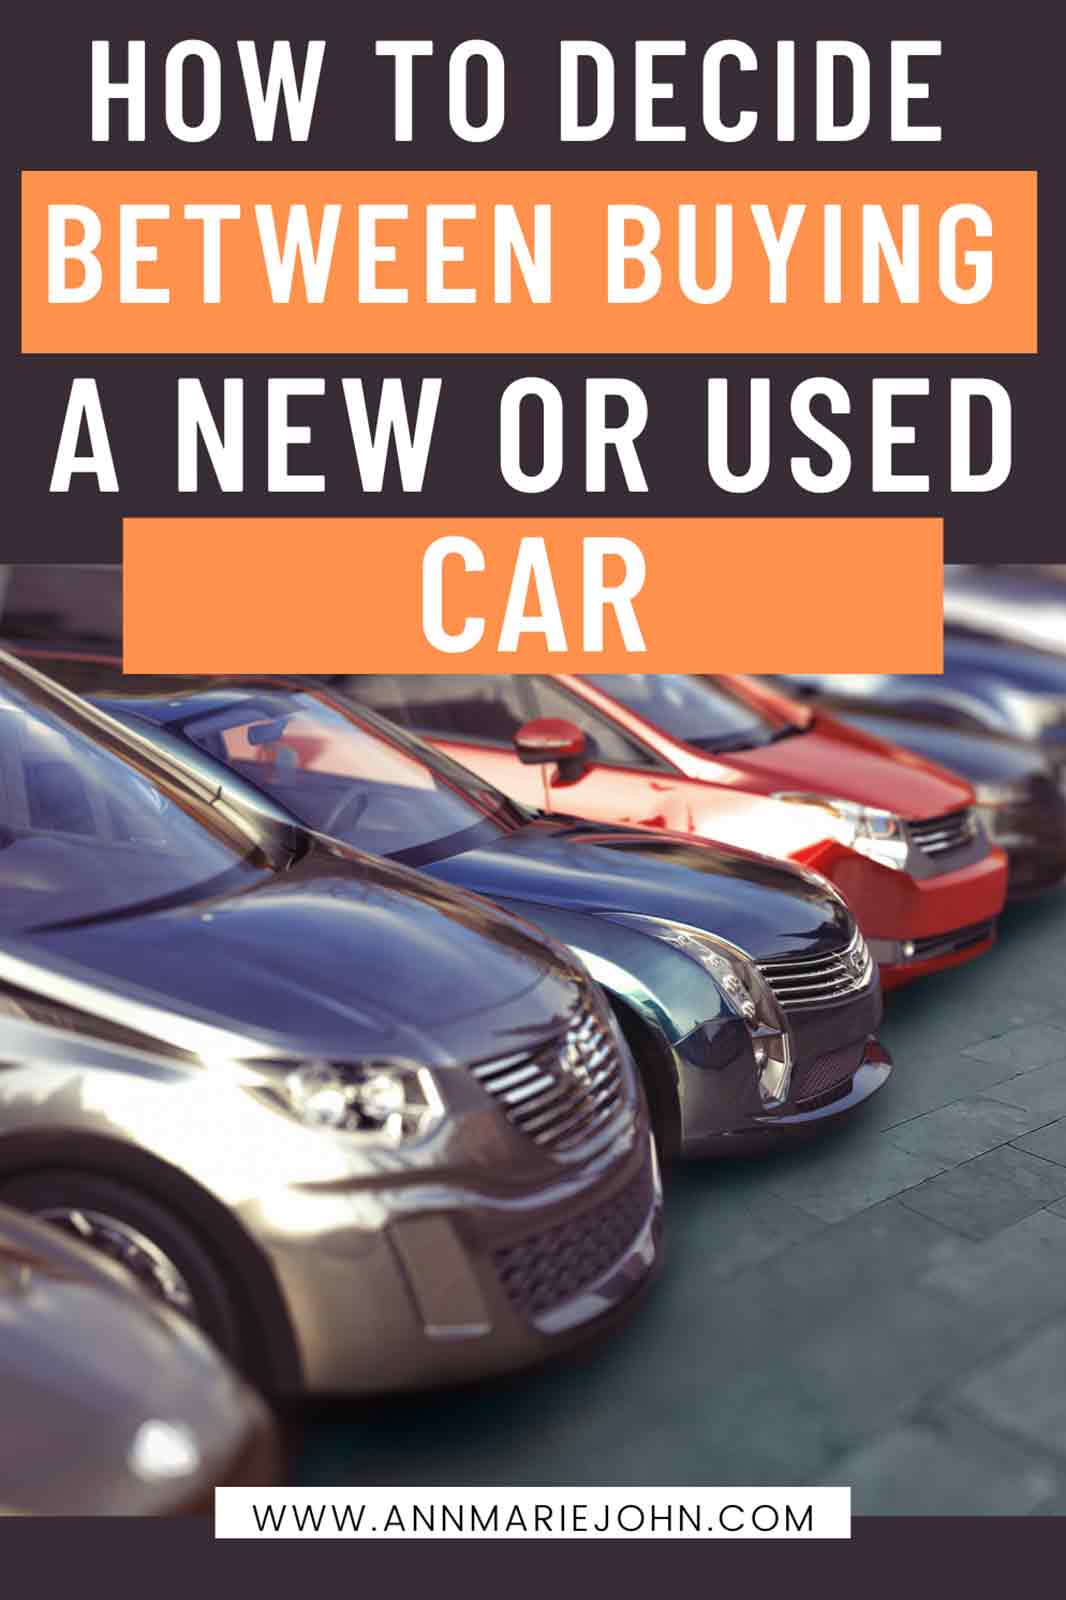 Deciding Between Buying a New and Used Car